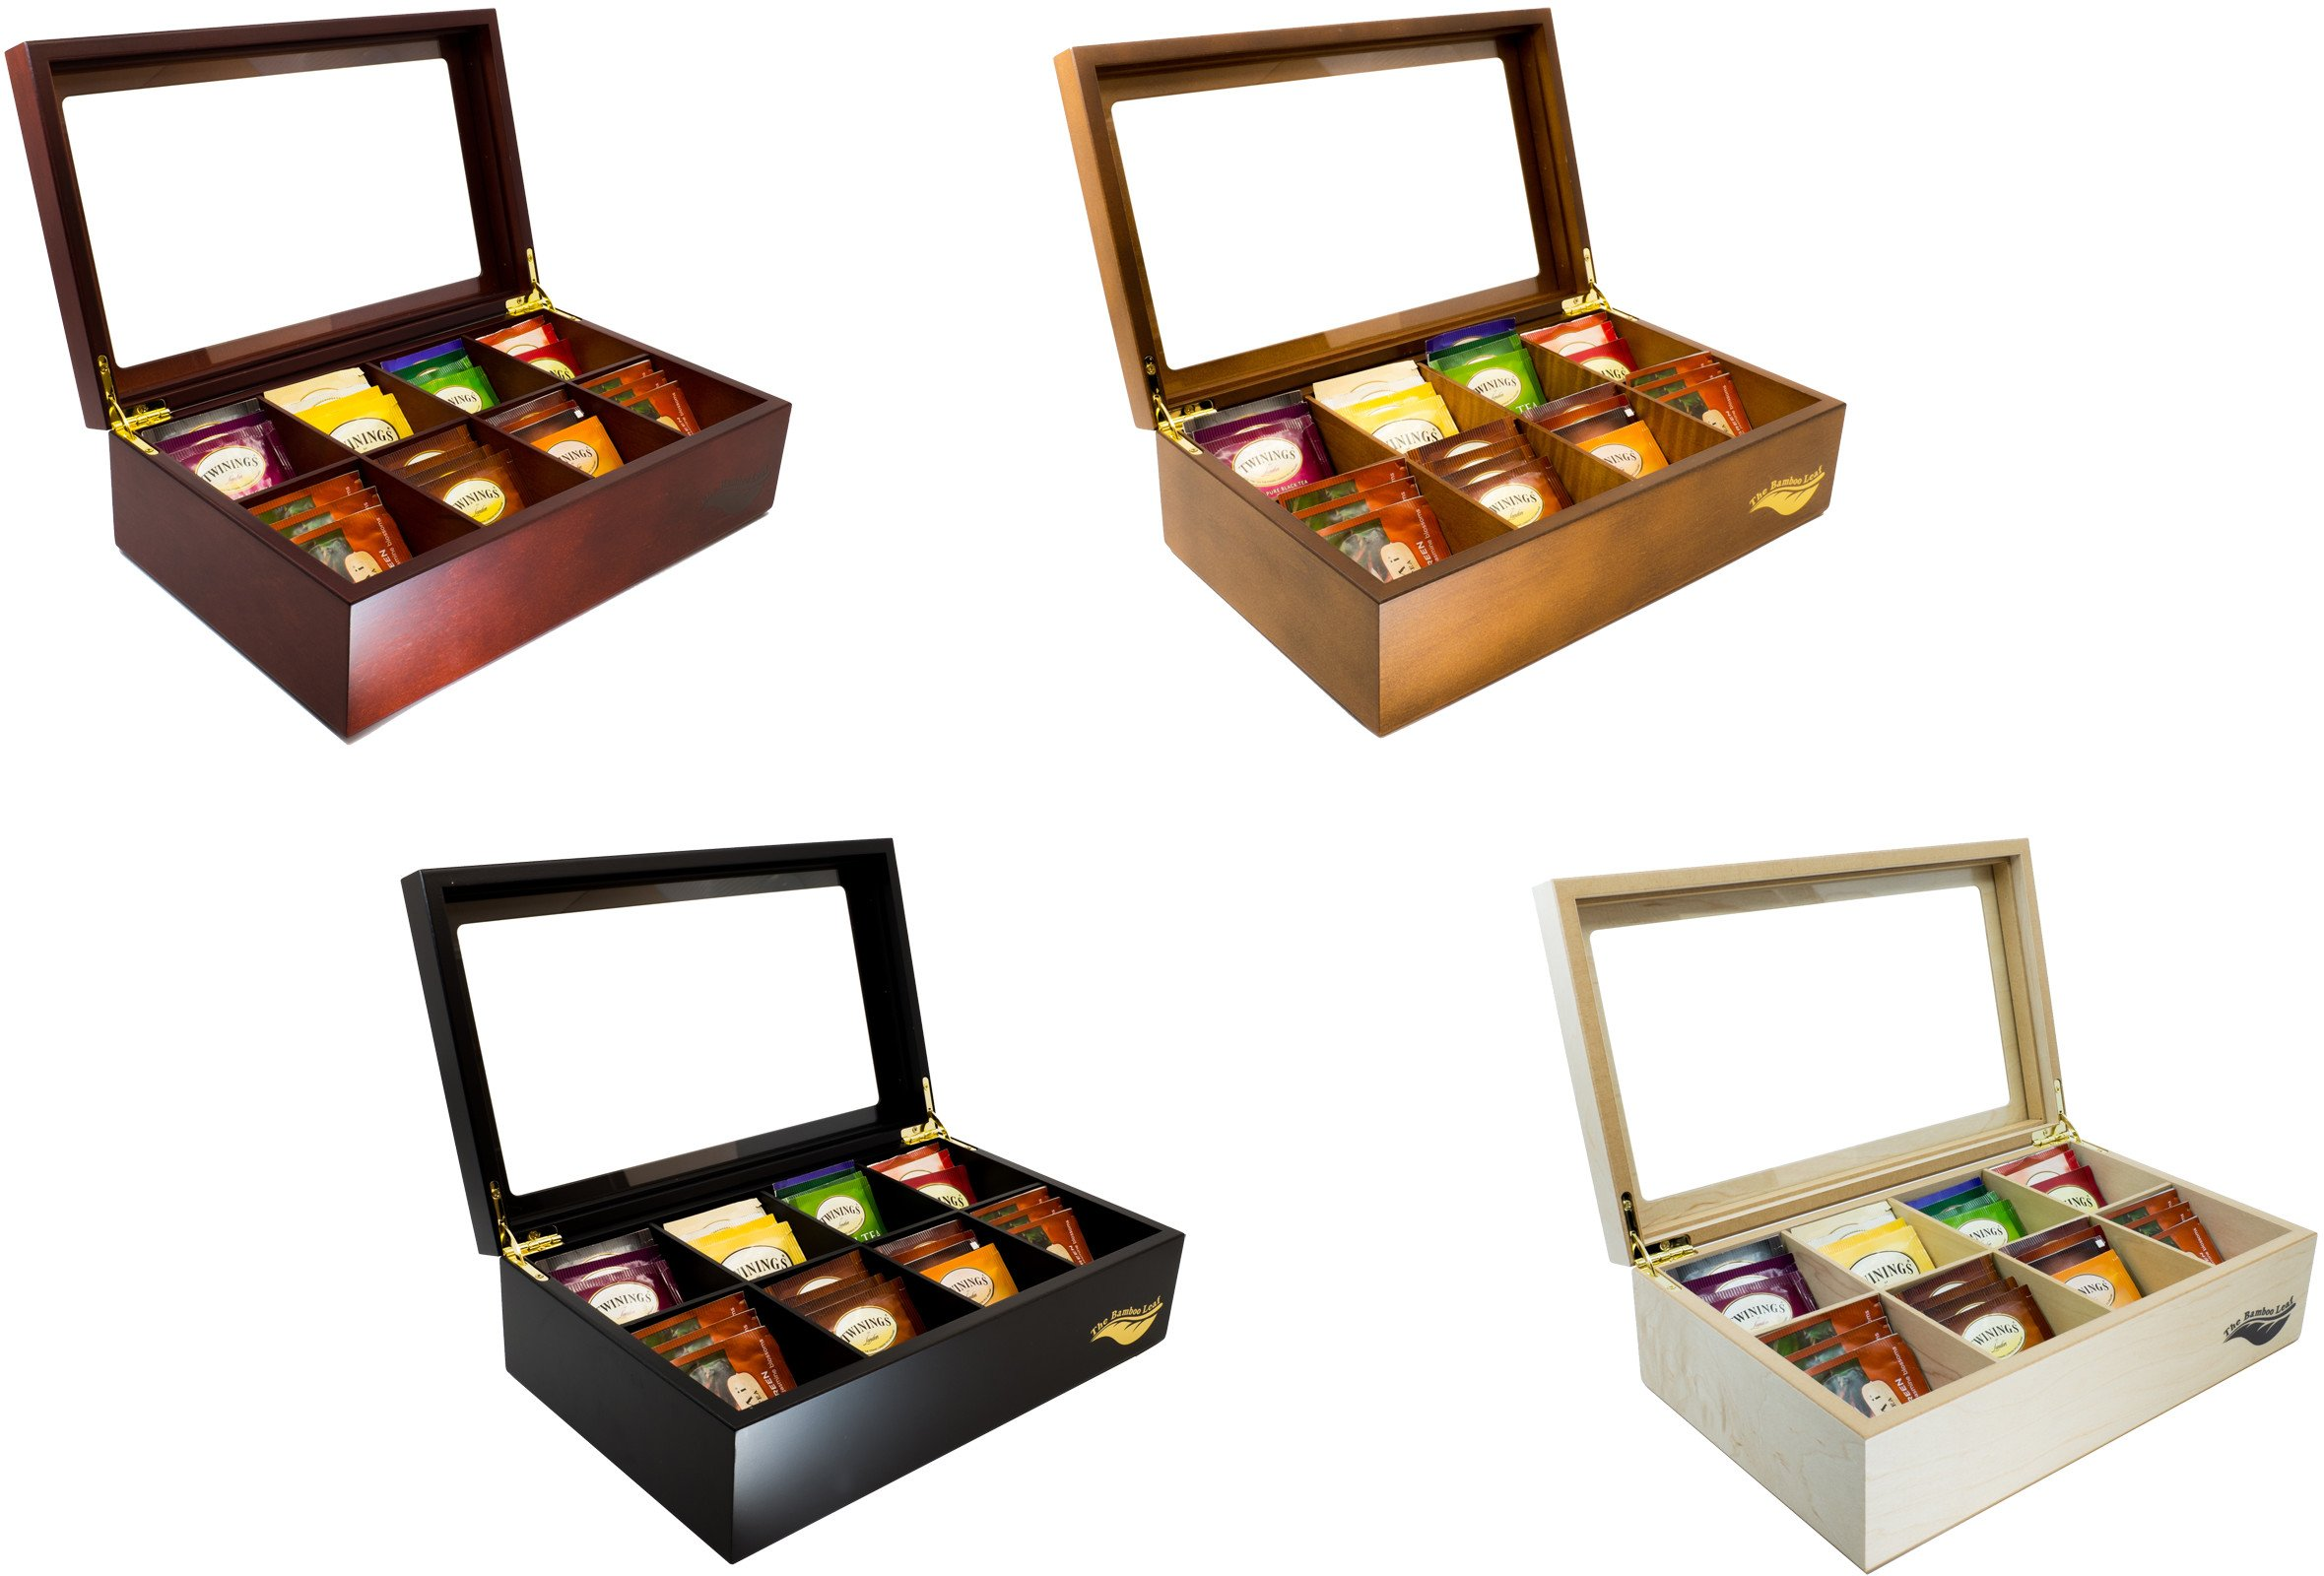 The Bamboo Leaf Luxury Wooden Tea BoxStorage Chest, 8 Compartments w/Glass Window (Natural) by The Bamboo Leaf (Image #8)